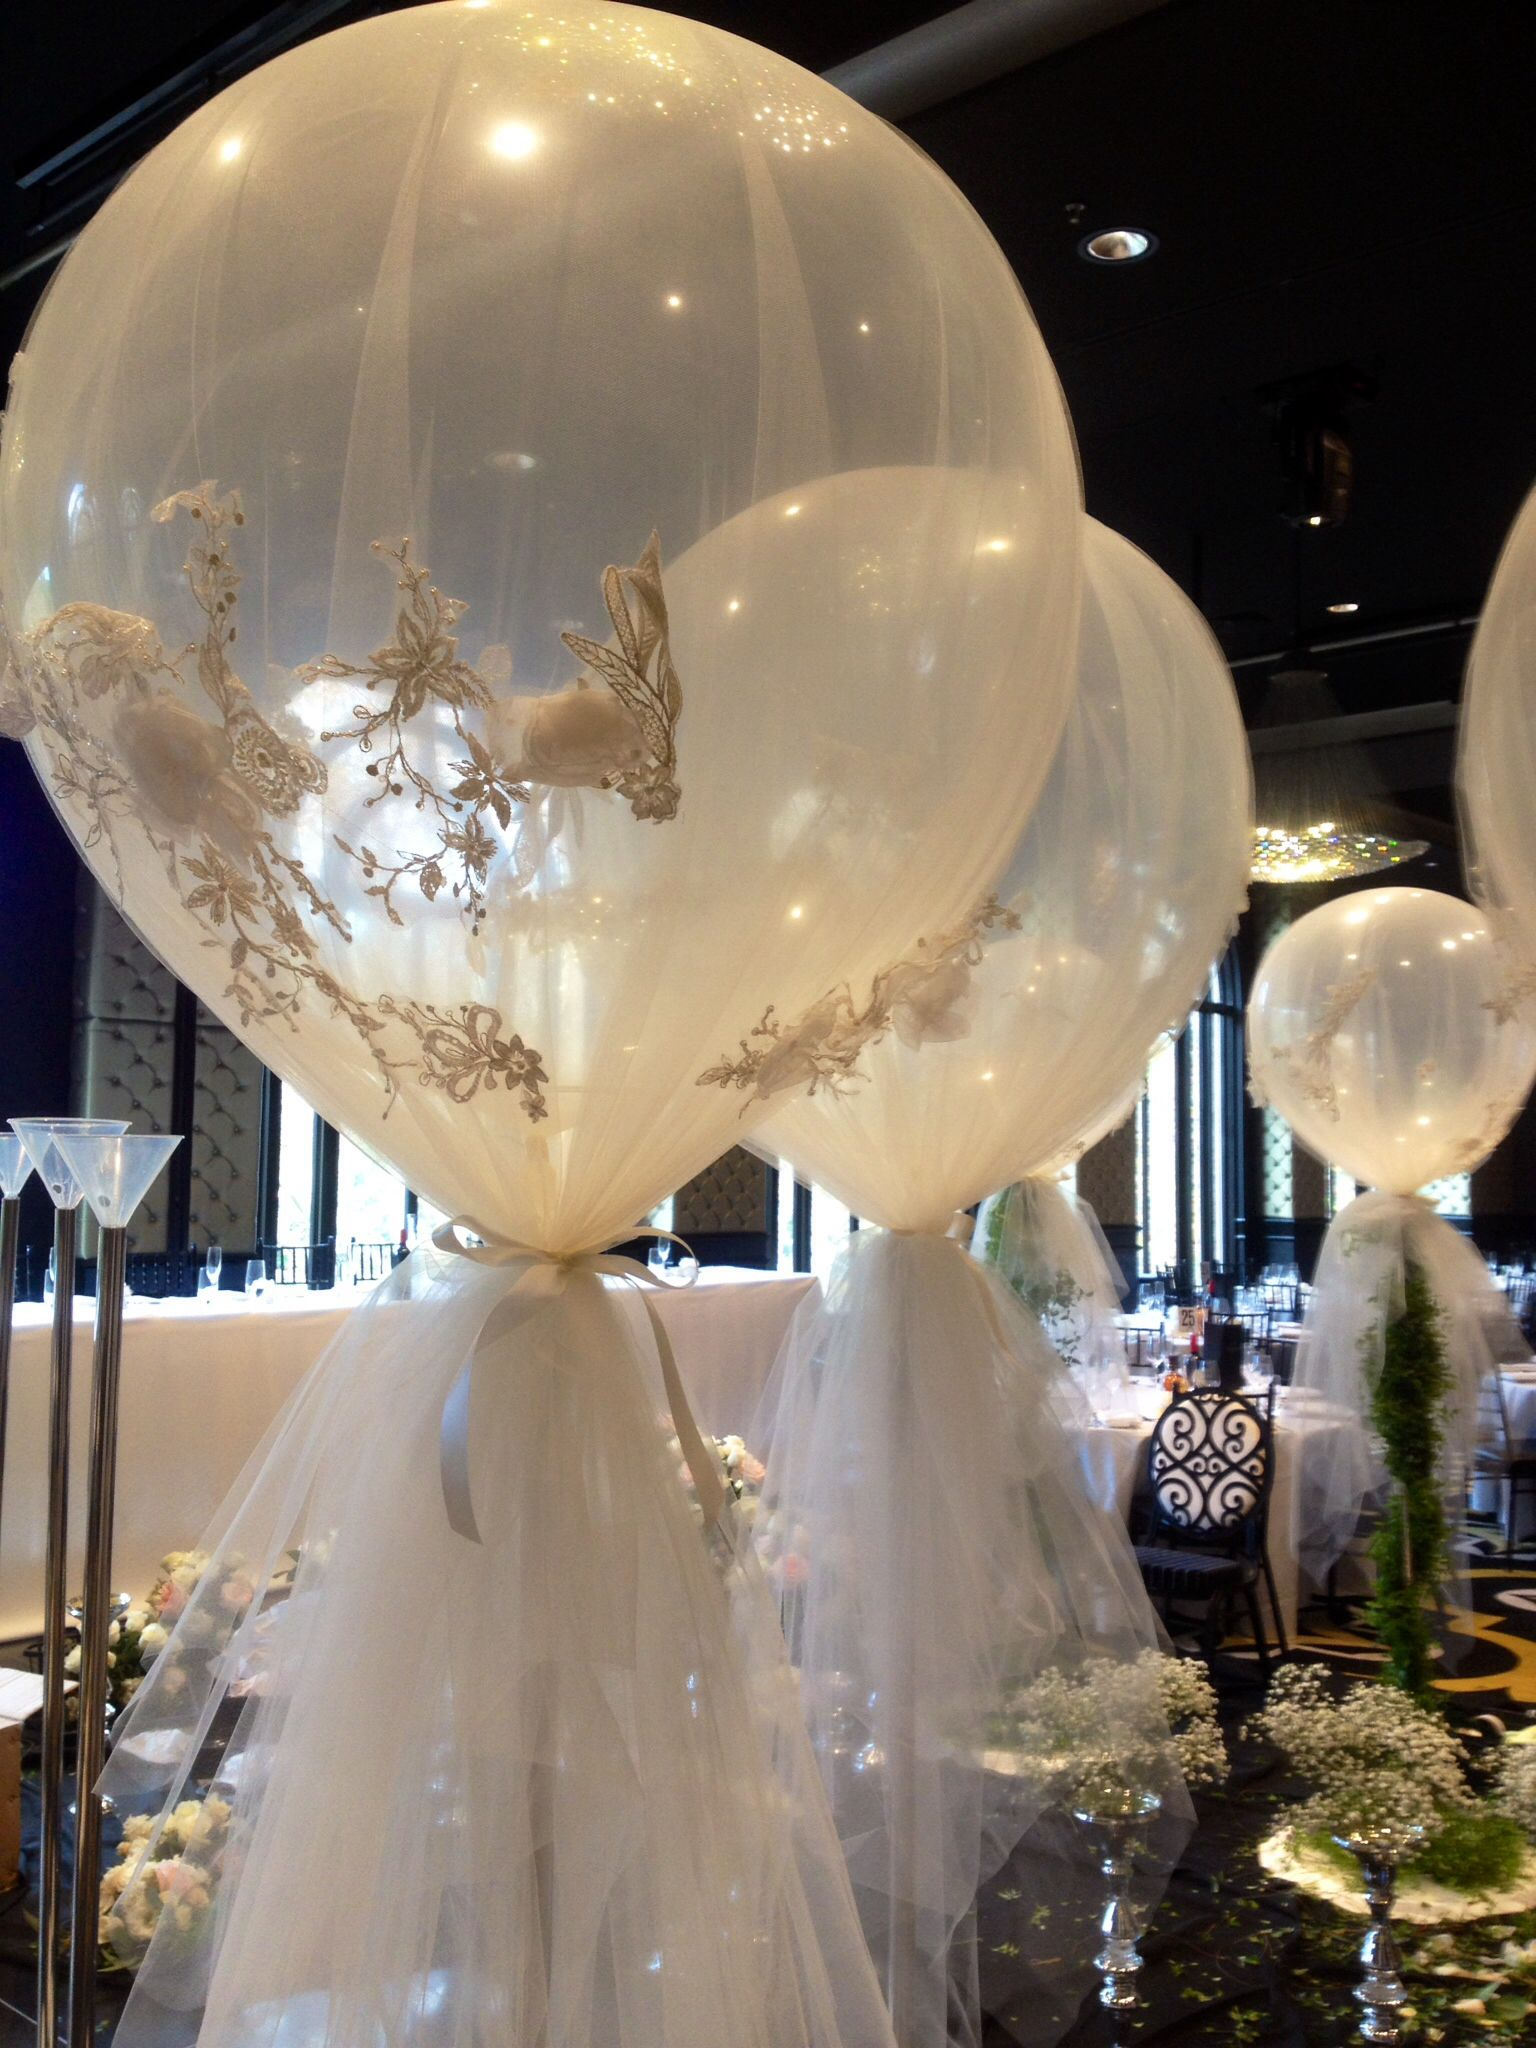 Diamond clear 3ft balloons wrapped in custom tulle wedding diamond clear balloons wrapped in custom tulle find this pin and more on wedding decorating ideas junglespirit Image collections